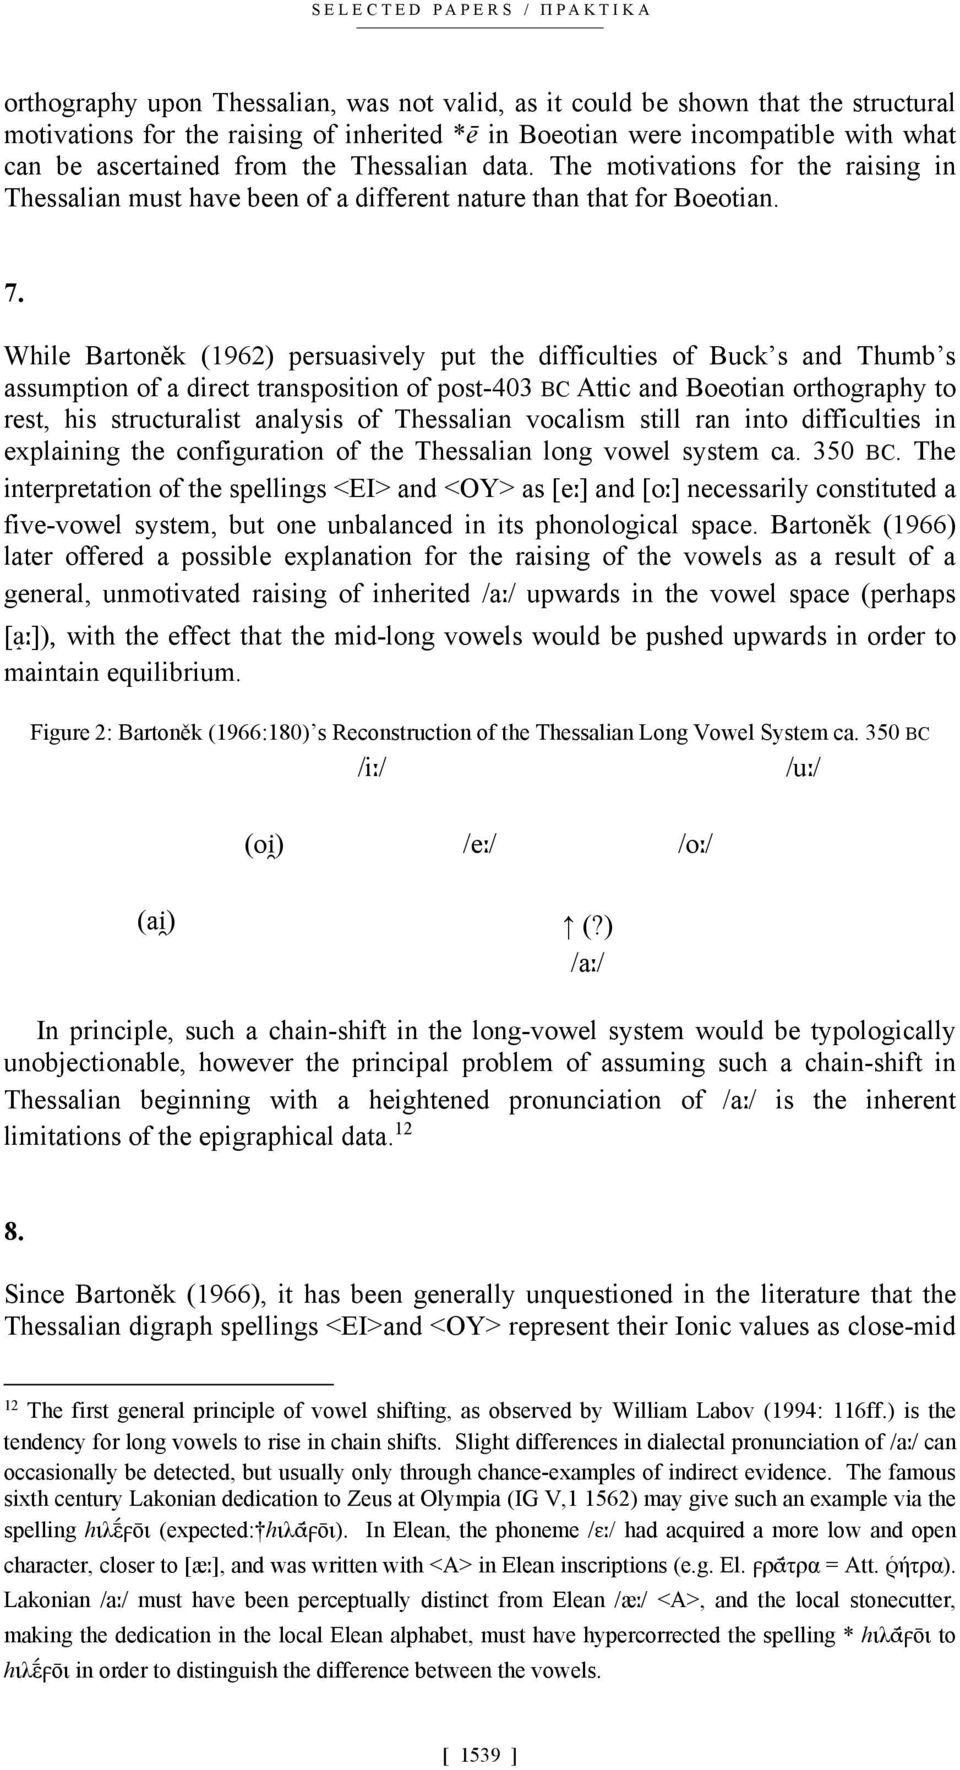 While Bartoněk (1962) persuasively put the difficulties of Buck s and Thumb s assumption of a direct transposition of post-403 BC Attic and Boeotian orthography to rest, his structuralist analysis of